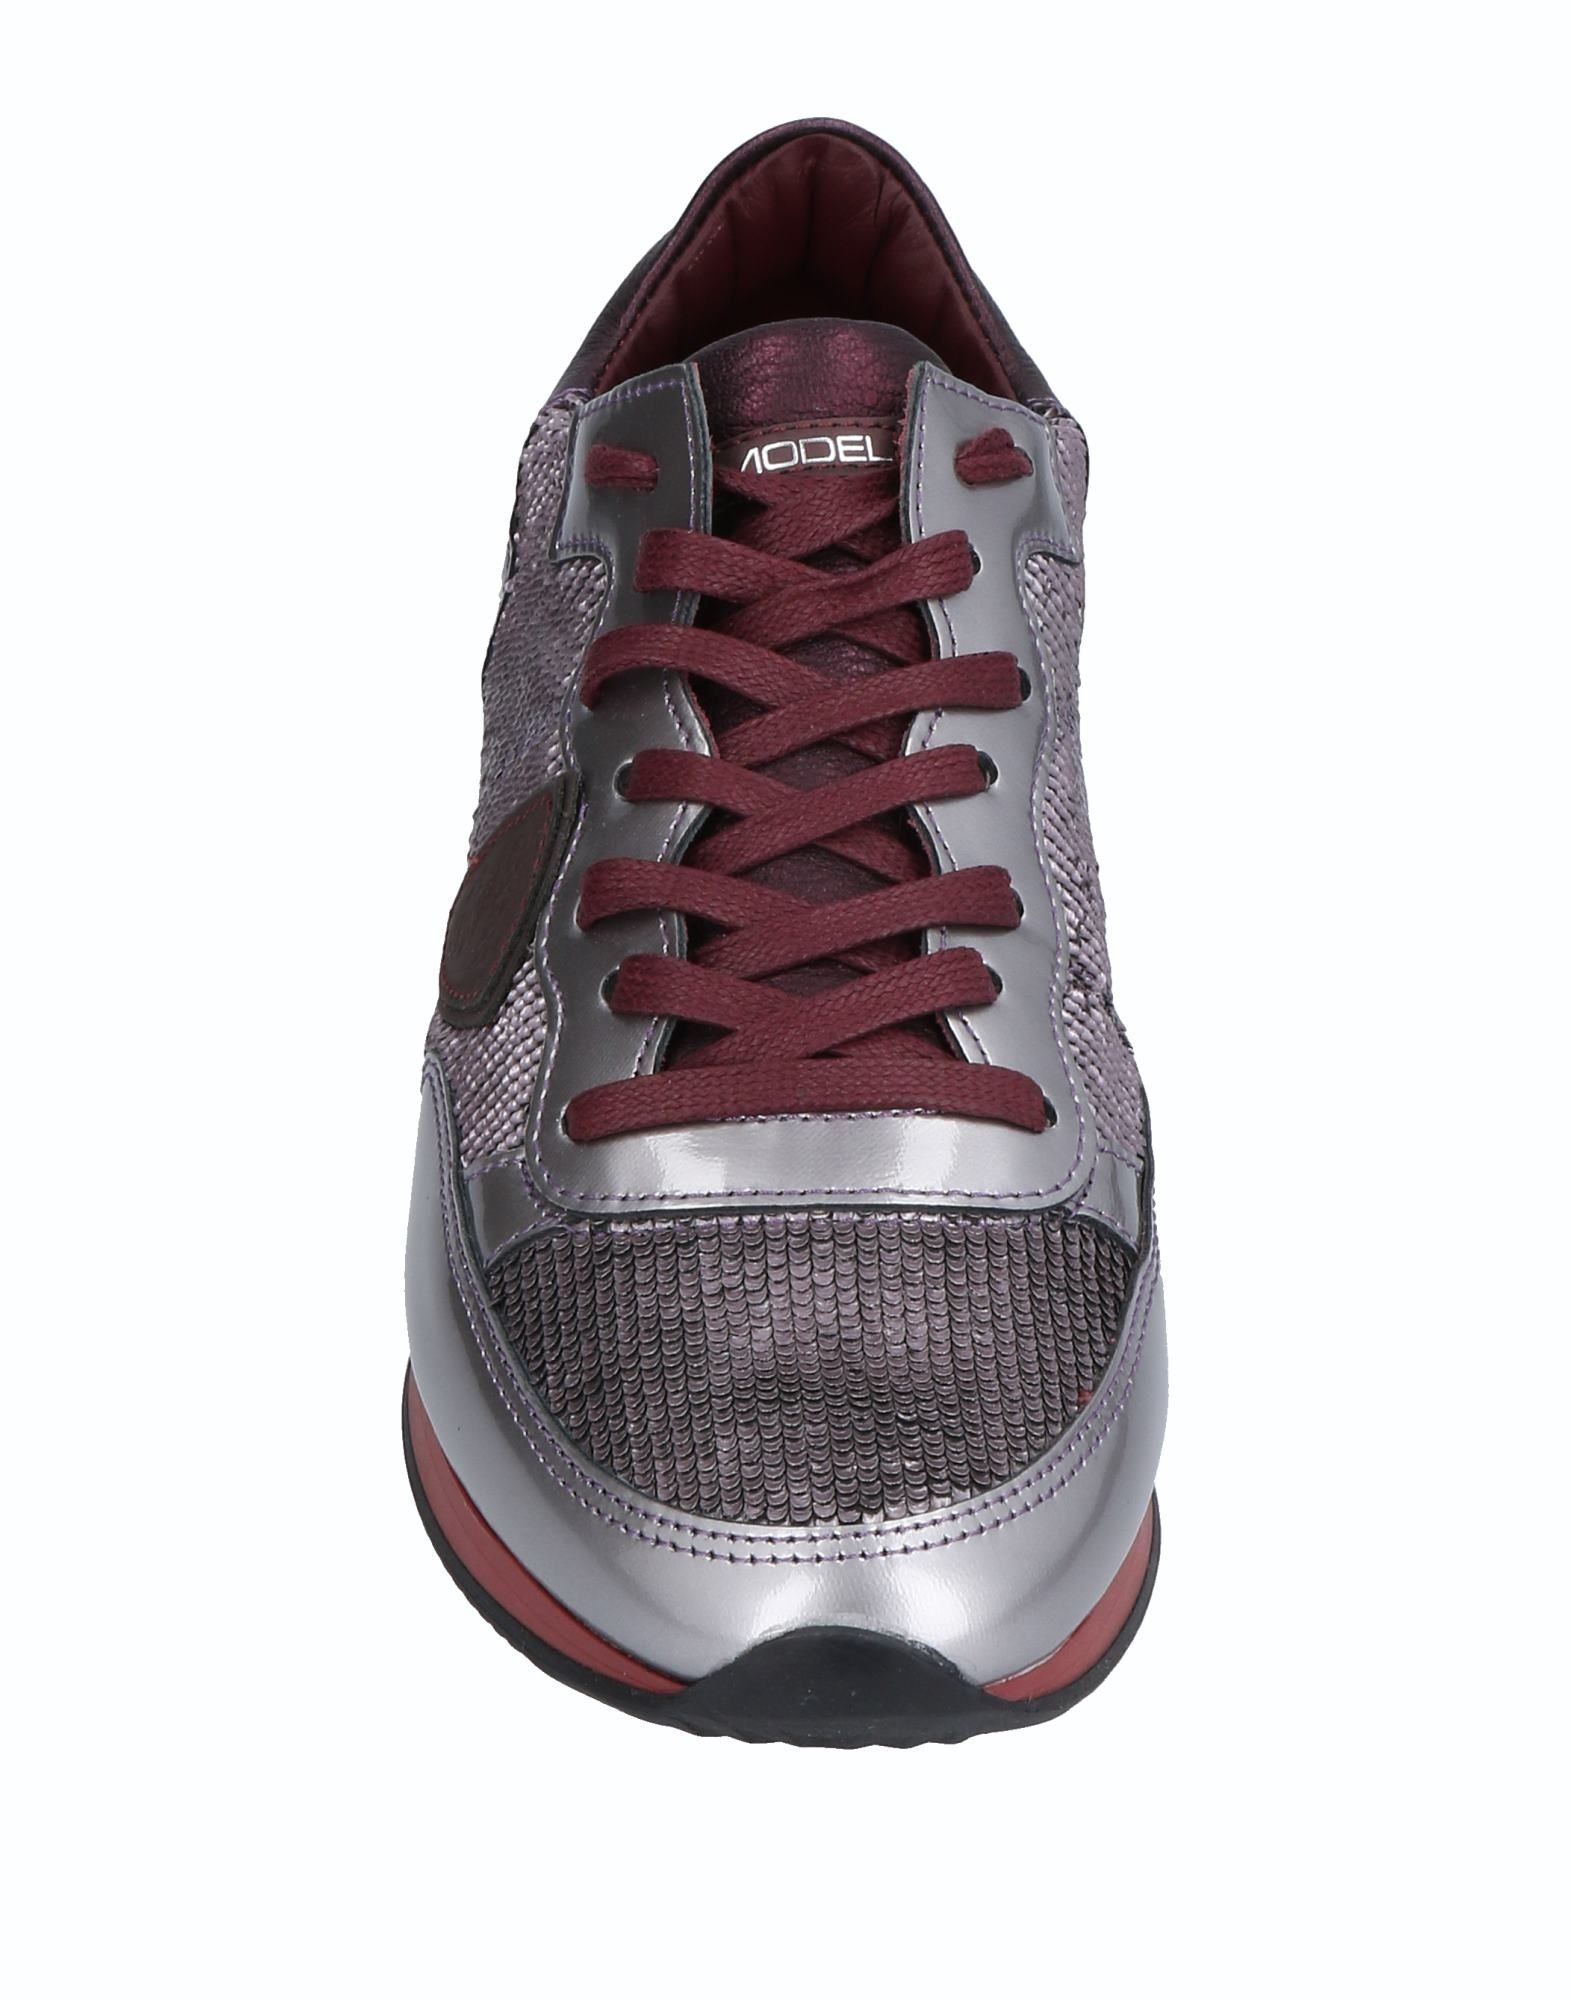 Philippe Model Model Model Sneakers - Women Philippe Model Sneakers online on  United Kingdom - 11501472XD 8a288f